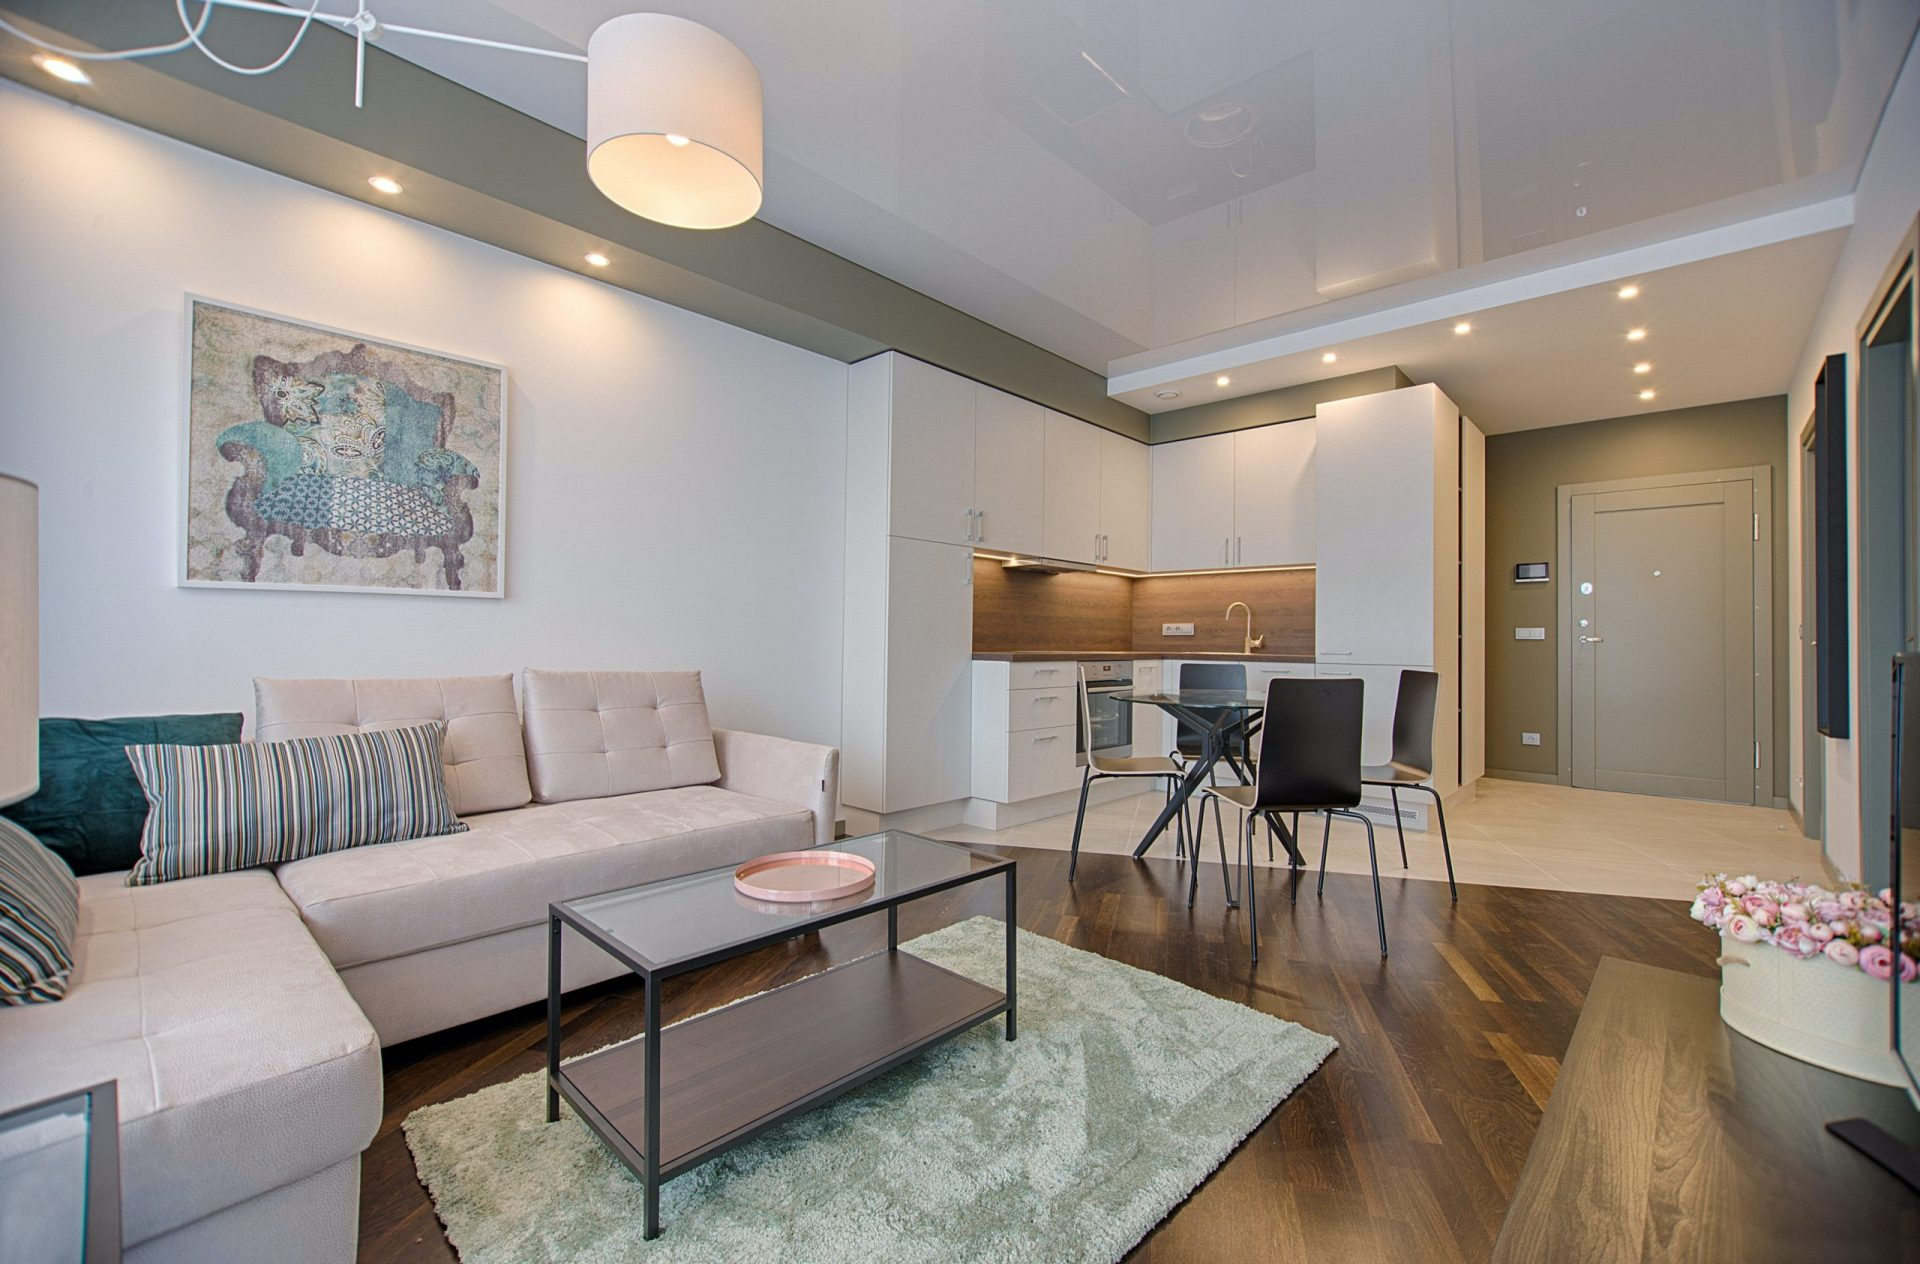 How to get your house sold 8 top tips interior of flat